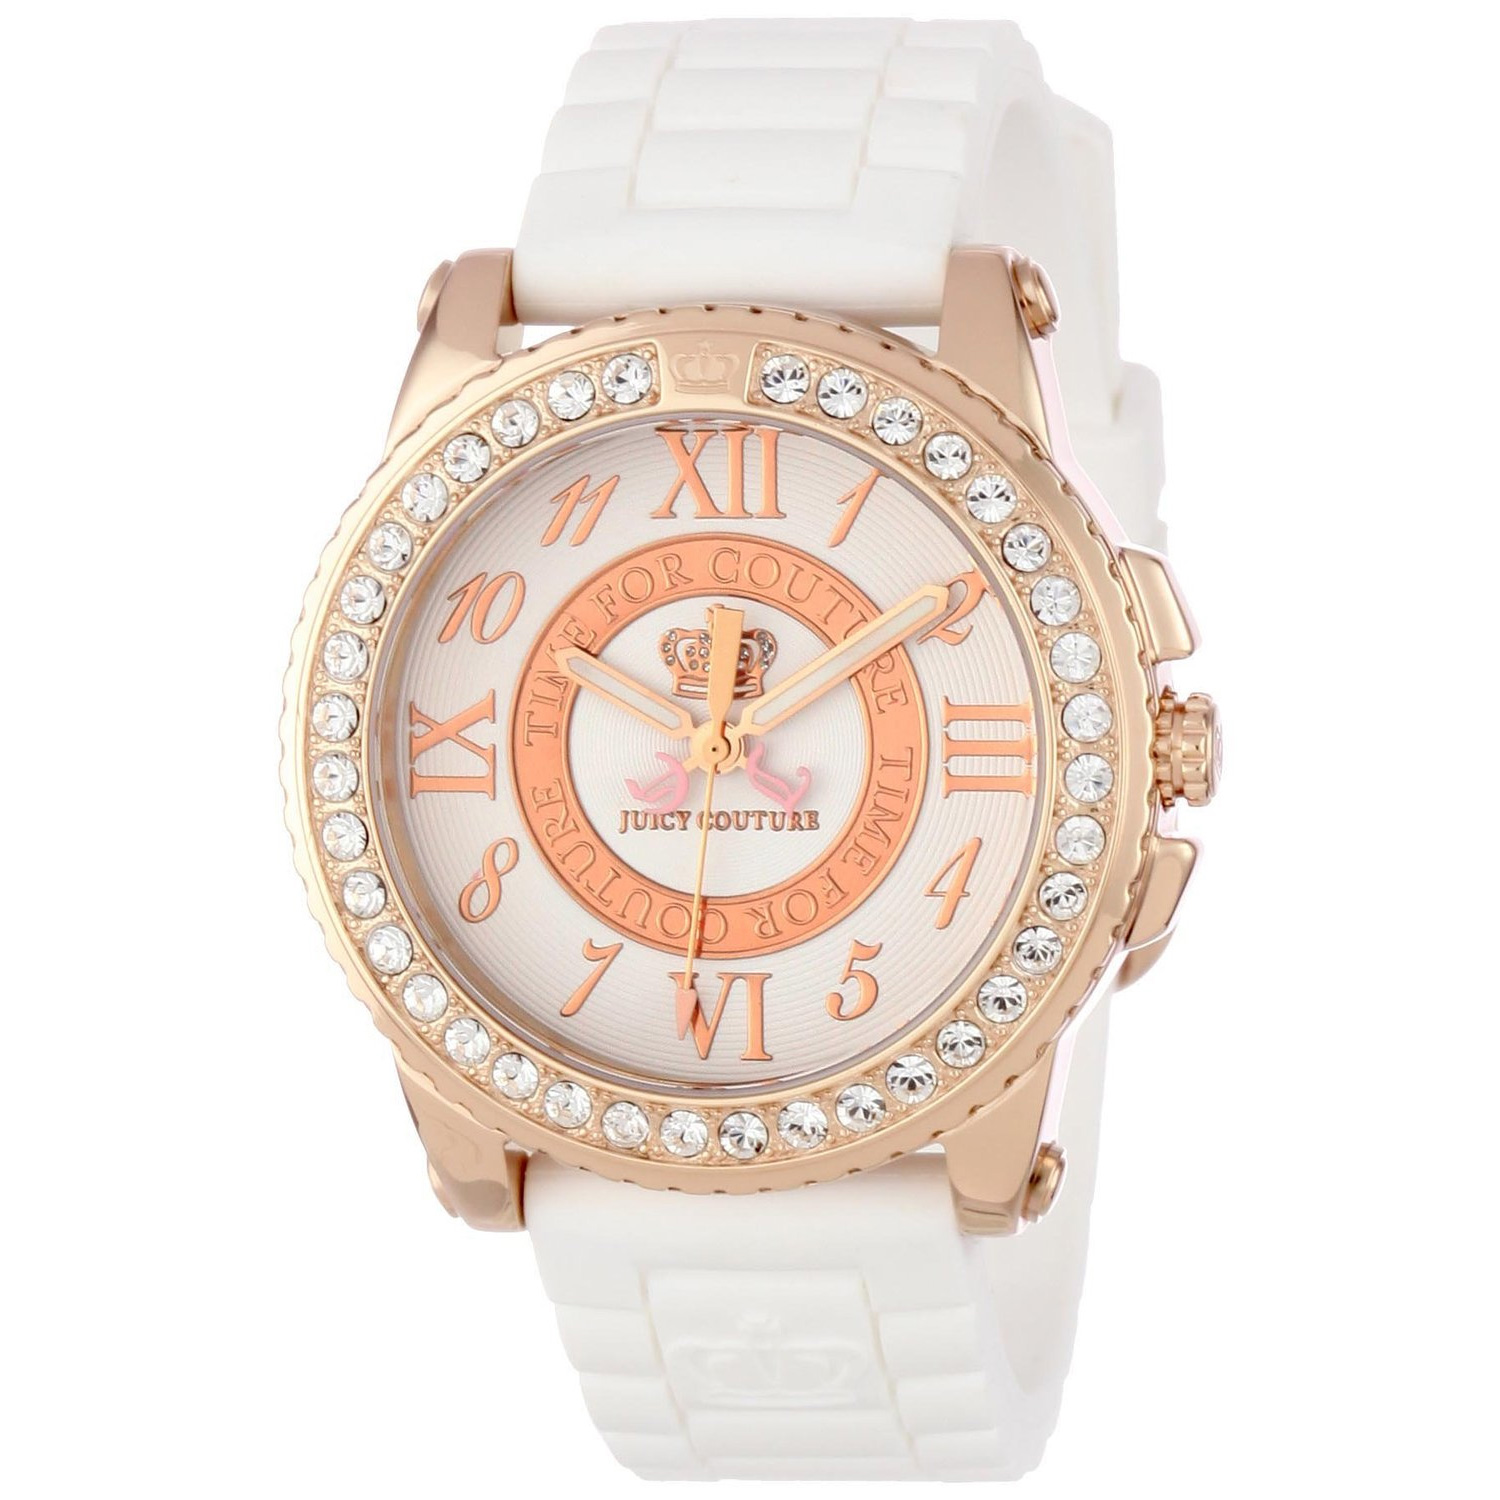 Orologio donna Juicy couture 1900792